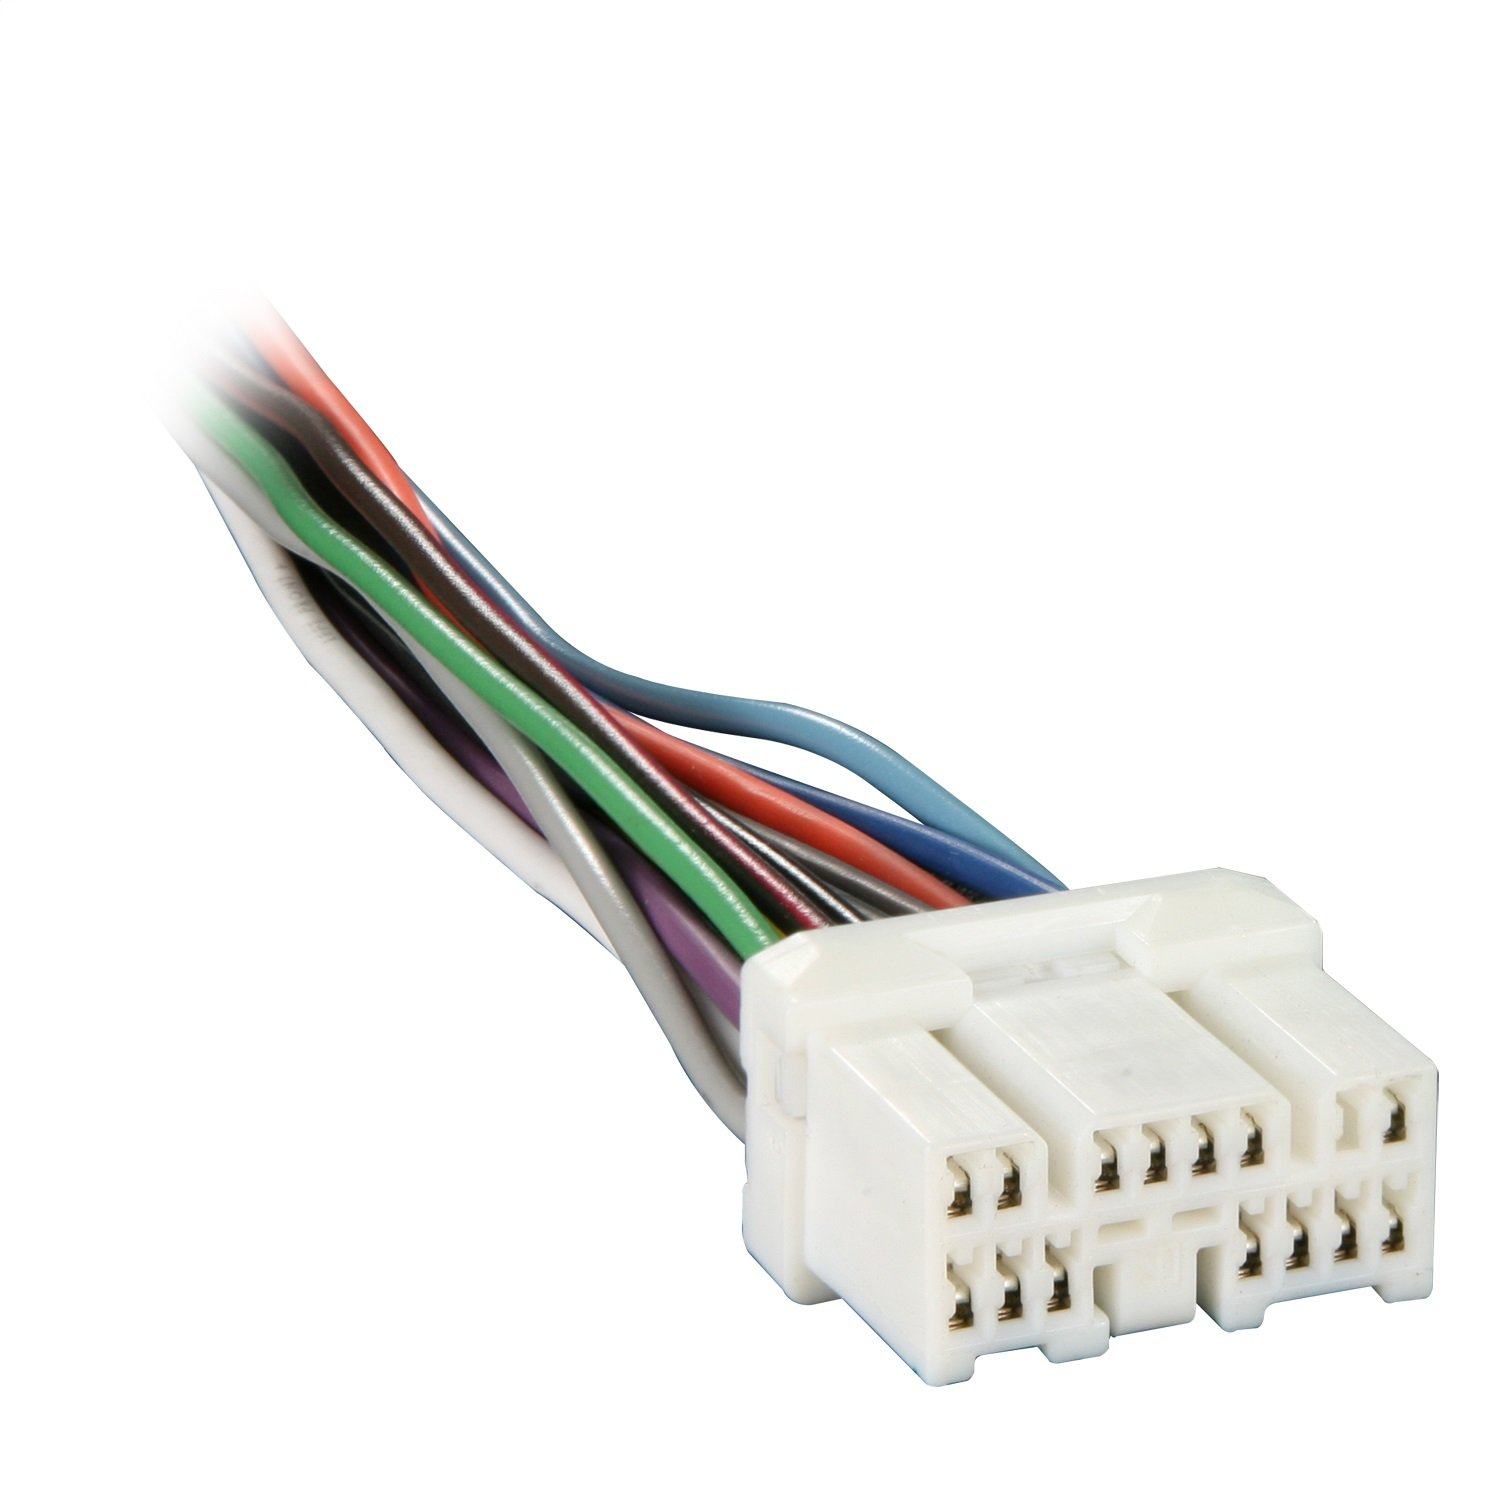 Amazon.com: Metra 71-8112 15-Pin Reverse Factory Radio Harness for Select  1992-1999 Toyota/Lexus Vehicles: Car Electronics